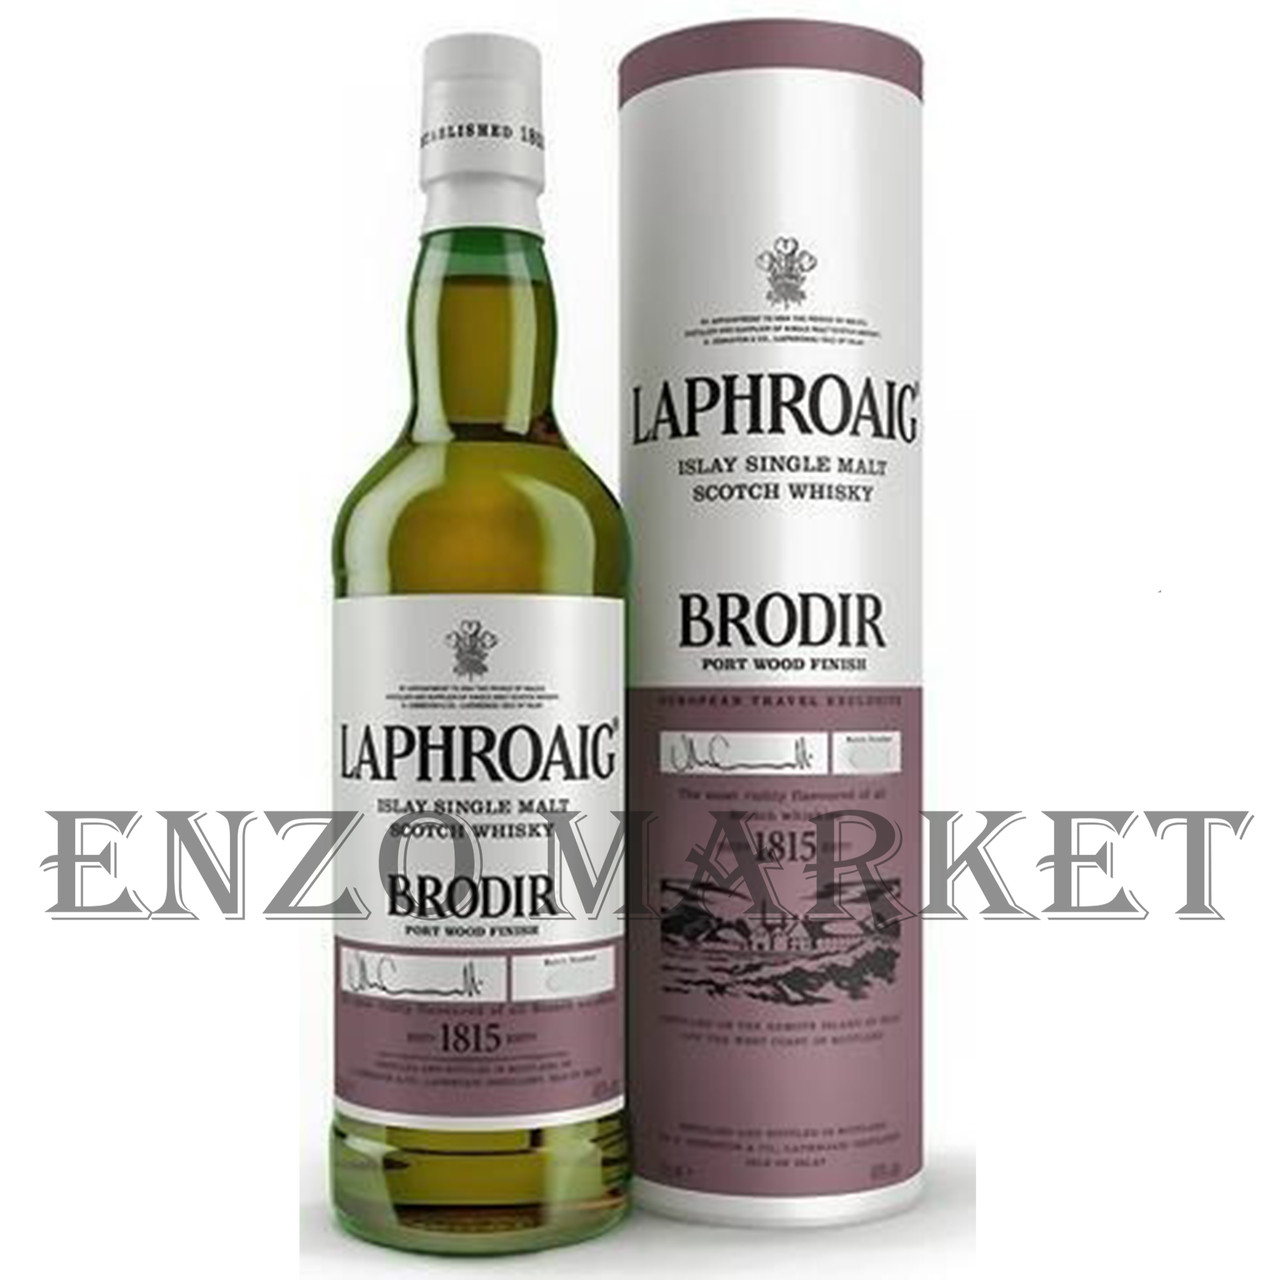 Виски Laphroaig Brodir, Port Wood Finish (Лафройг Бродир, Портвуд Финиш) 48%, 0,7 литра